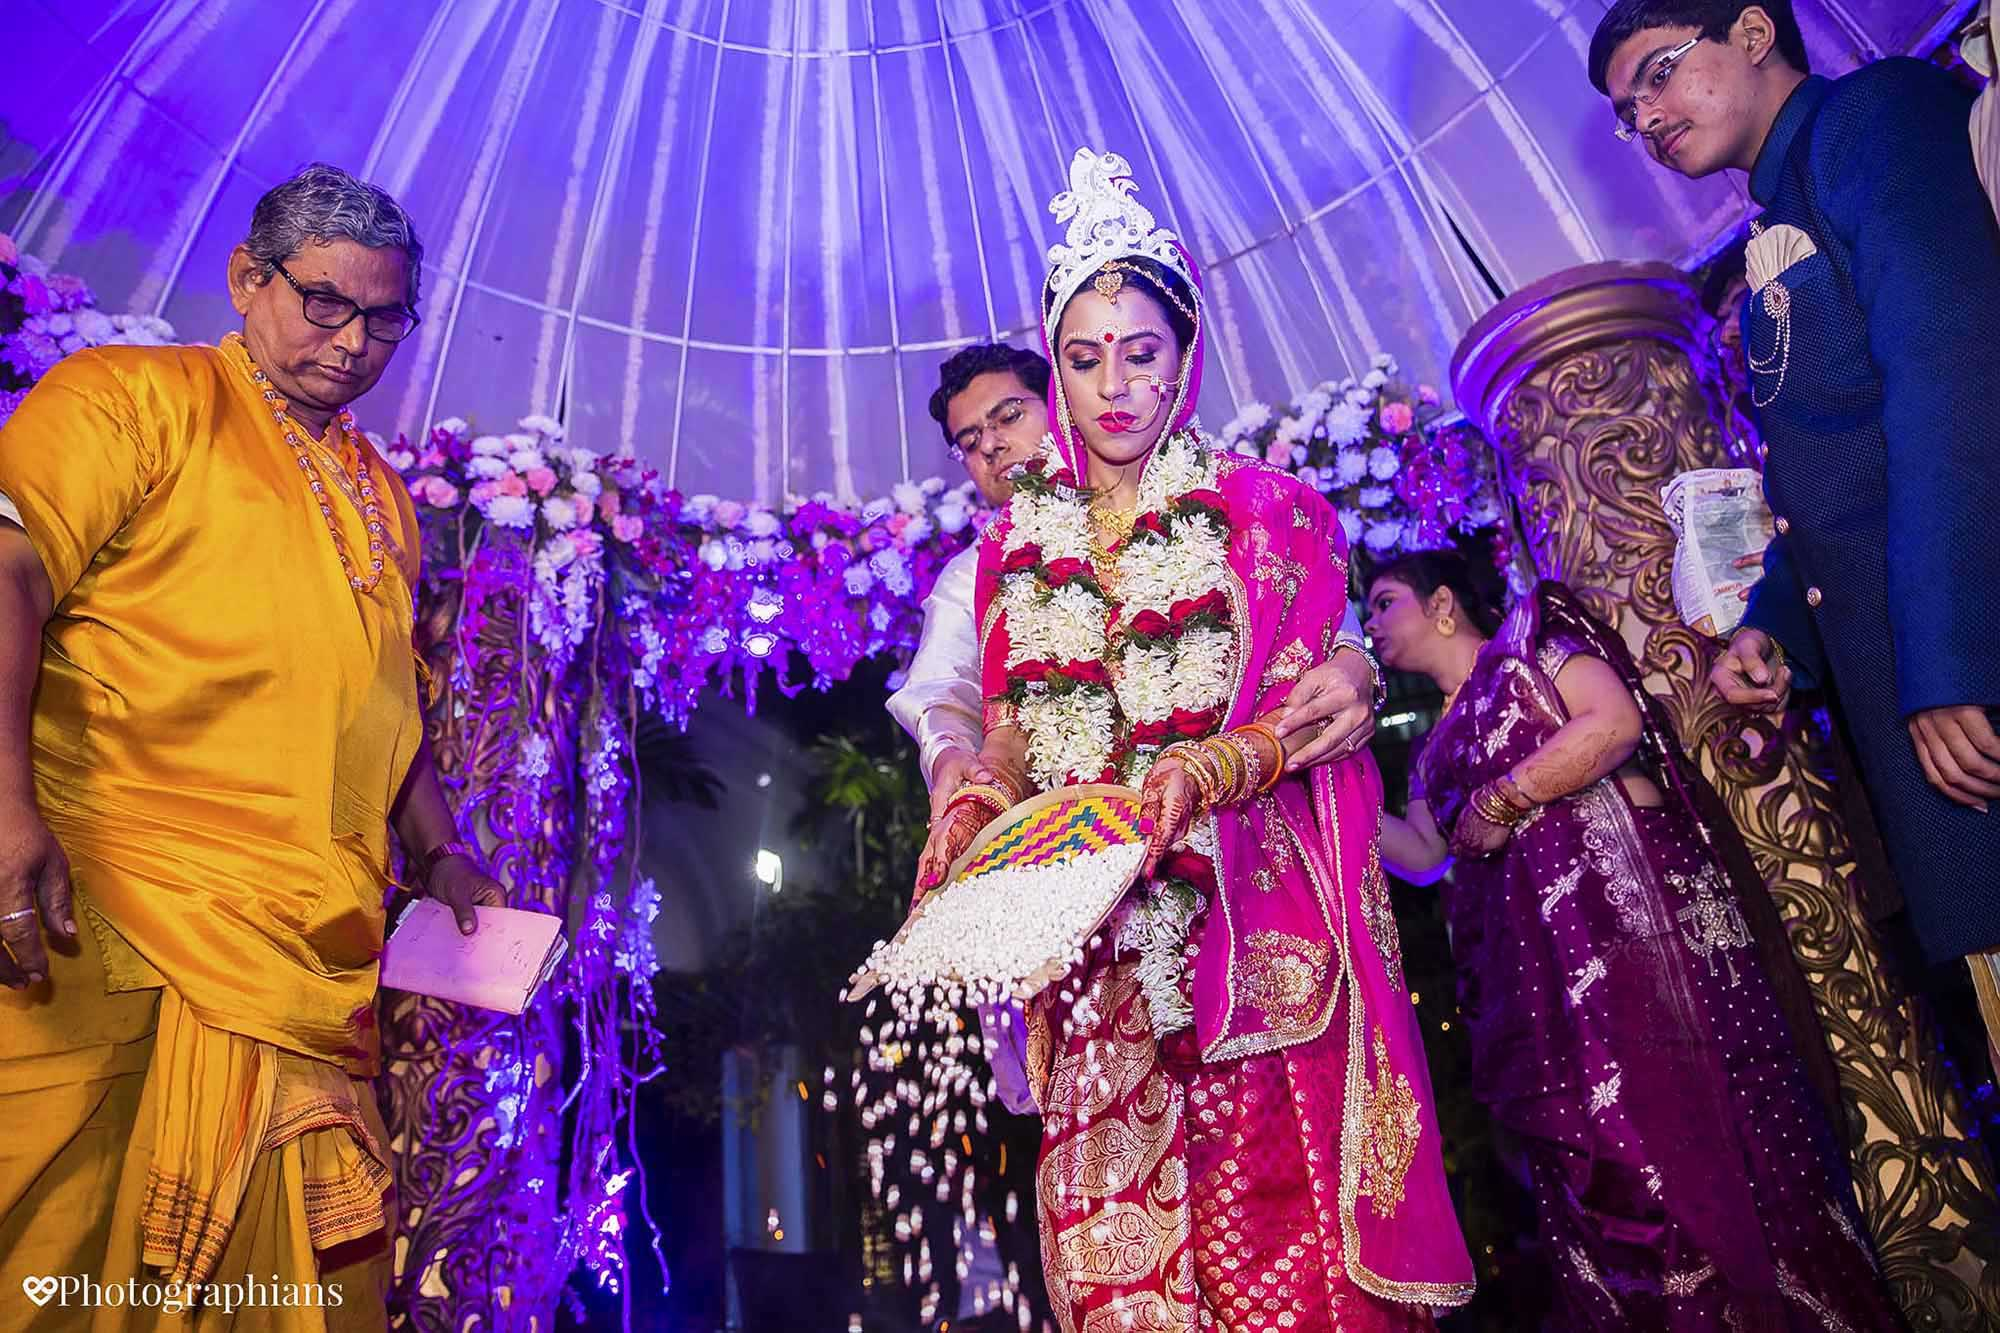 Bengali_Wedding_Photography_Kolkata_Photographians_146